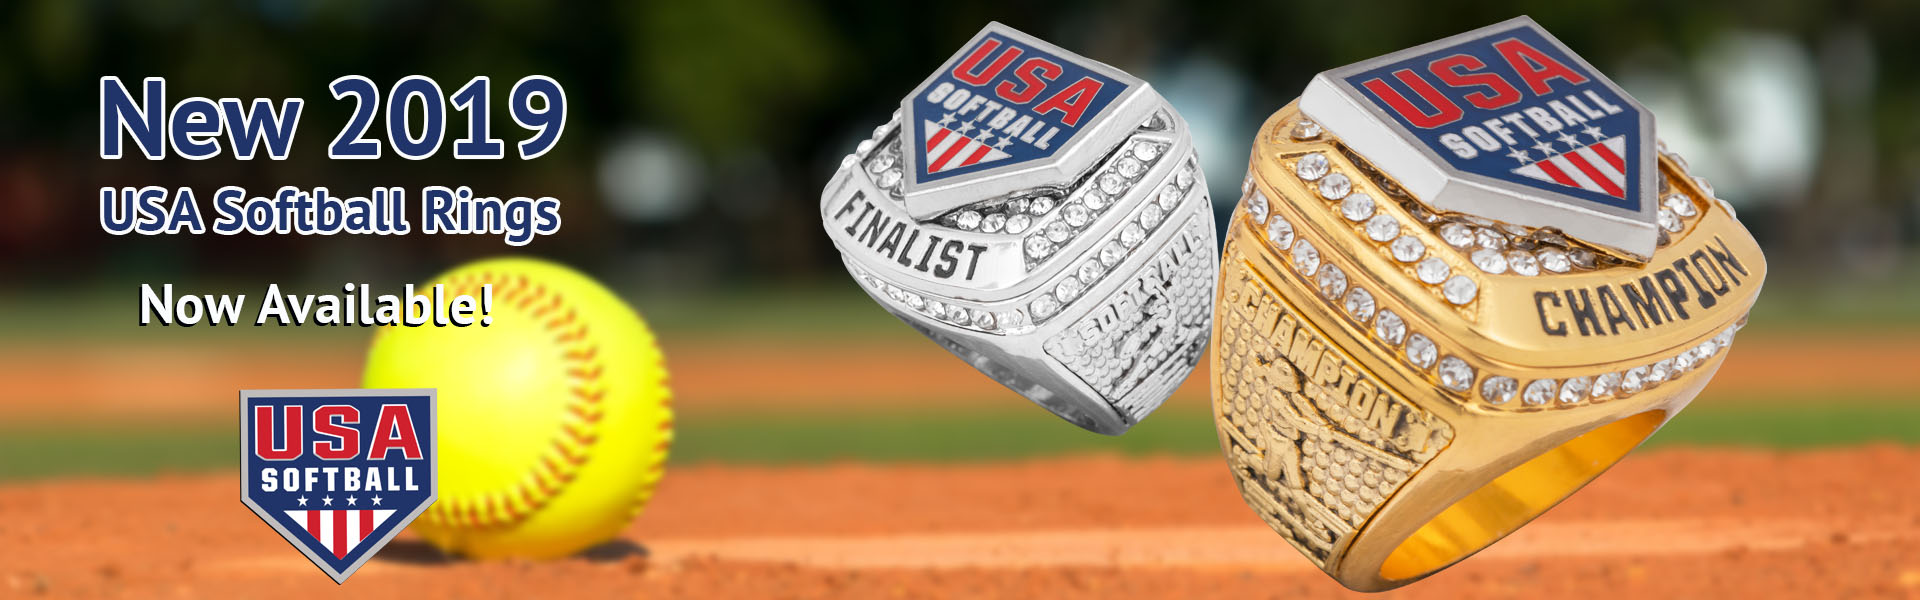 USA Softball Banner1